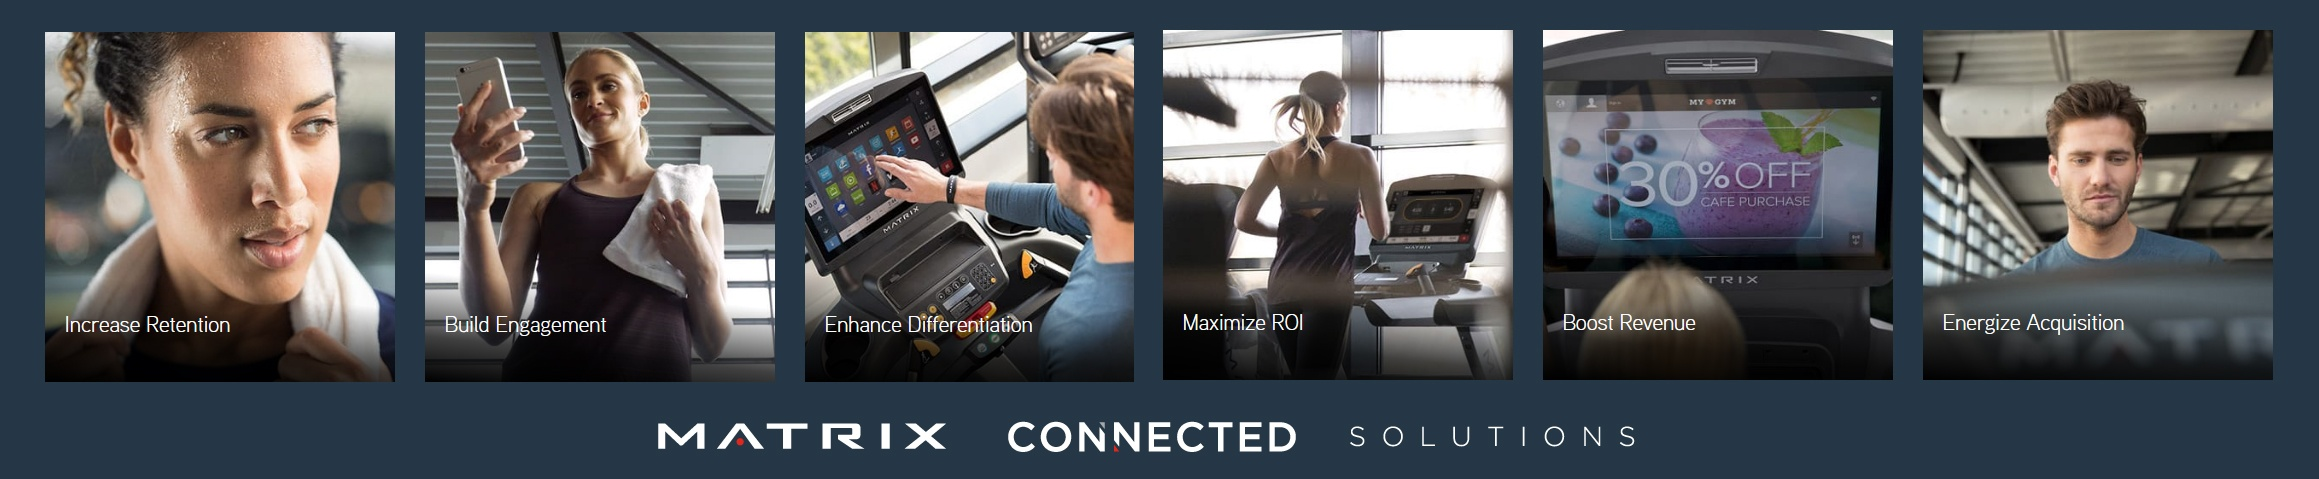 Matrix Connected Solutions - Get Connected to a World of Digital Solutions